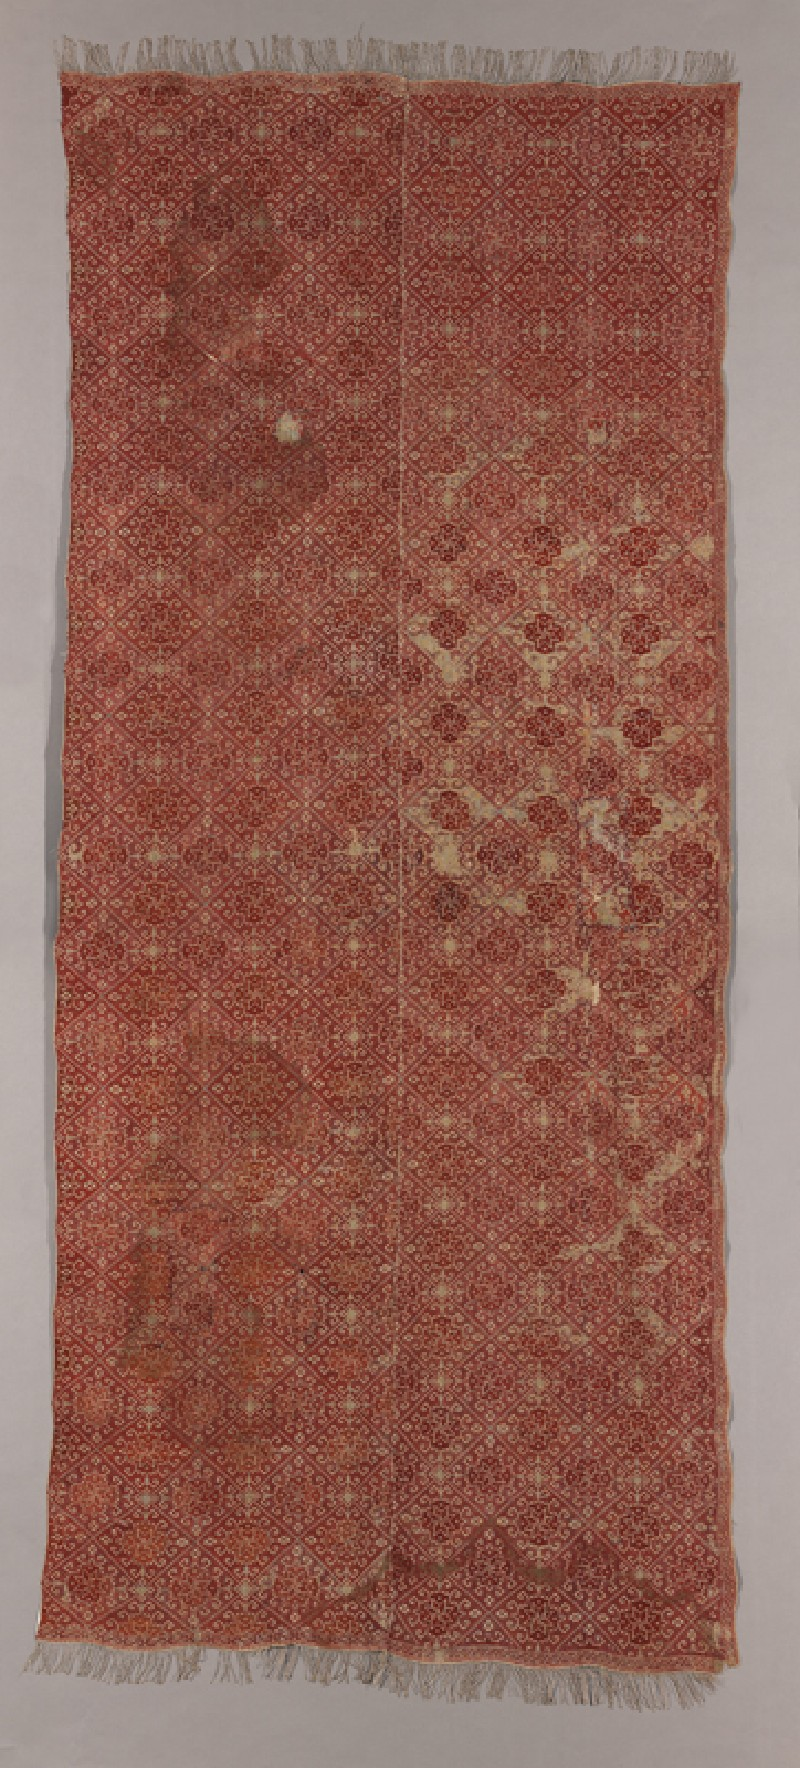 Coverlet with diamond-shapes containing medallions and protruding hooks (front            )